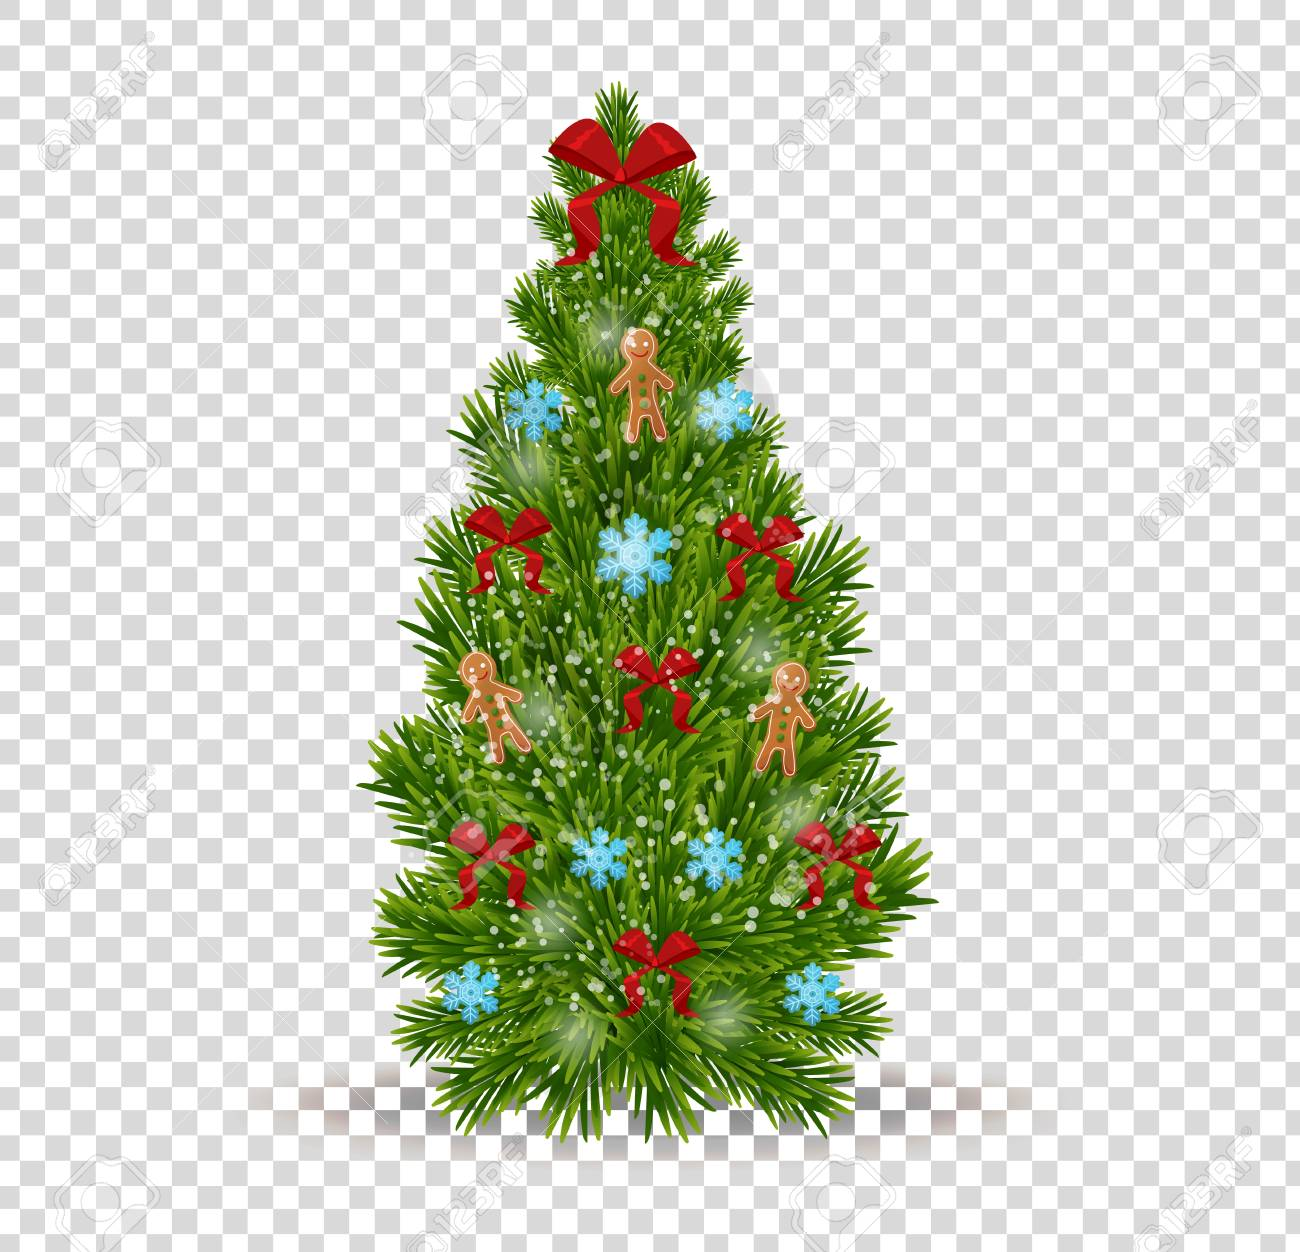 christmas tree transparent background free christmas tree transparent background png transparent images 48304 pngio christmas tree transparent background